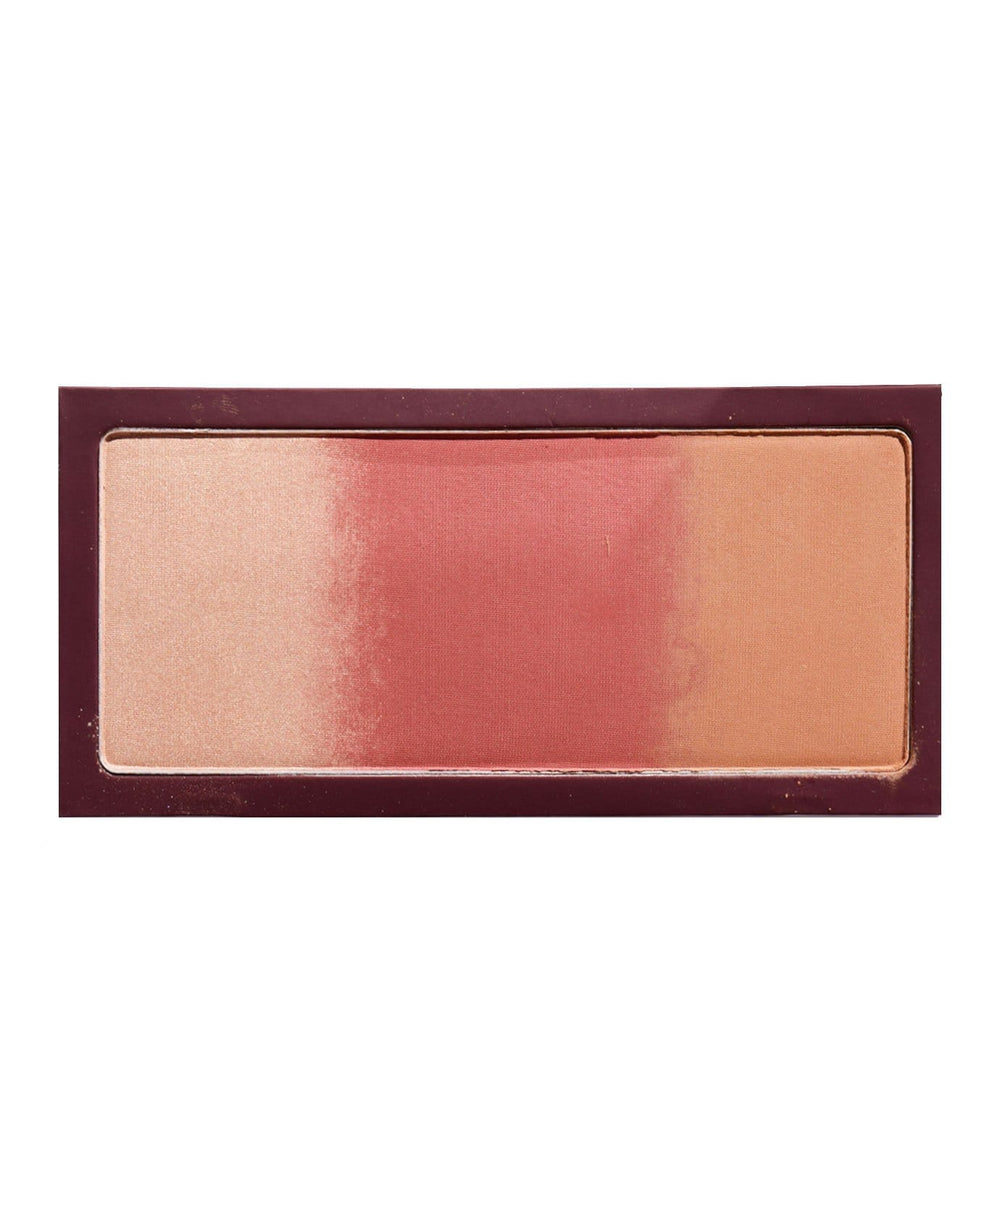 Kara Beauty Spice Ride Ombre Cheek Palette